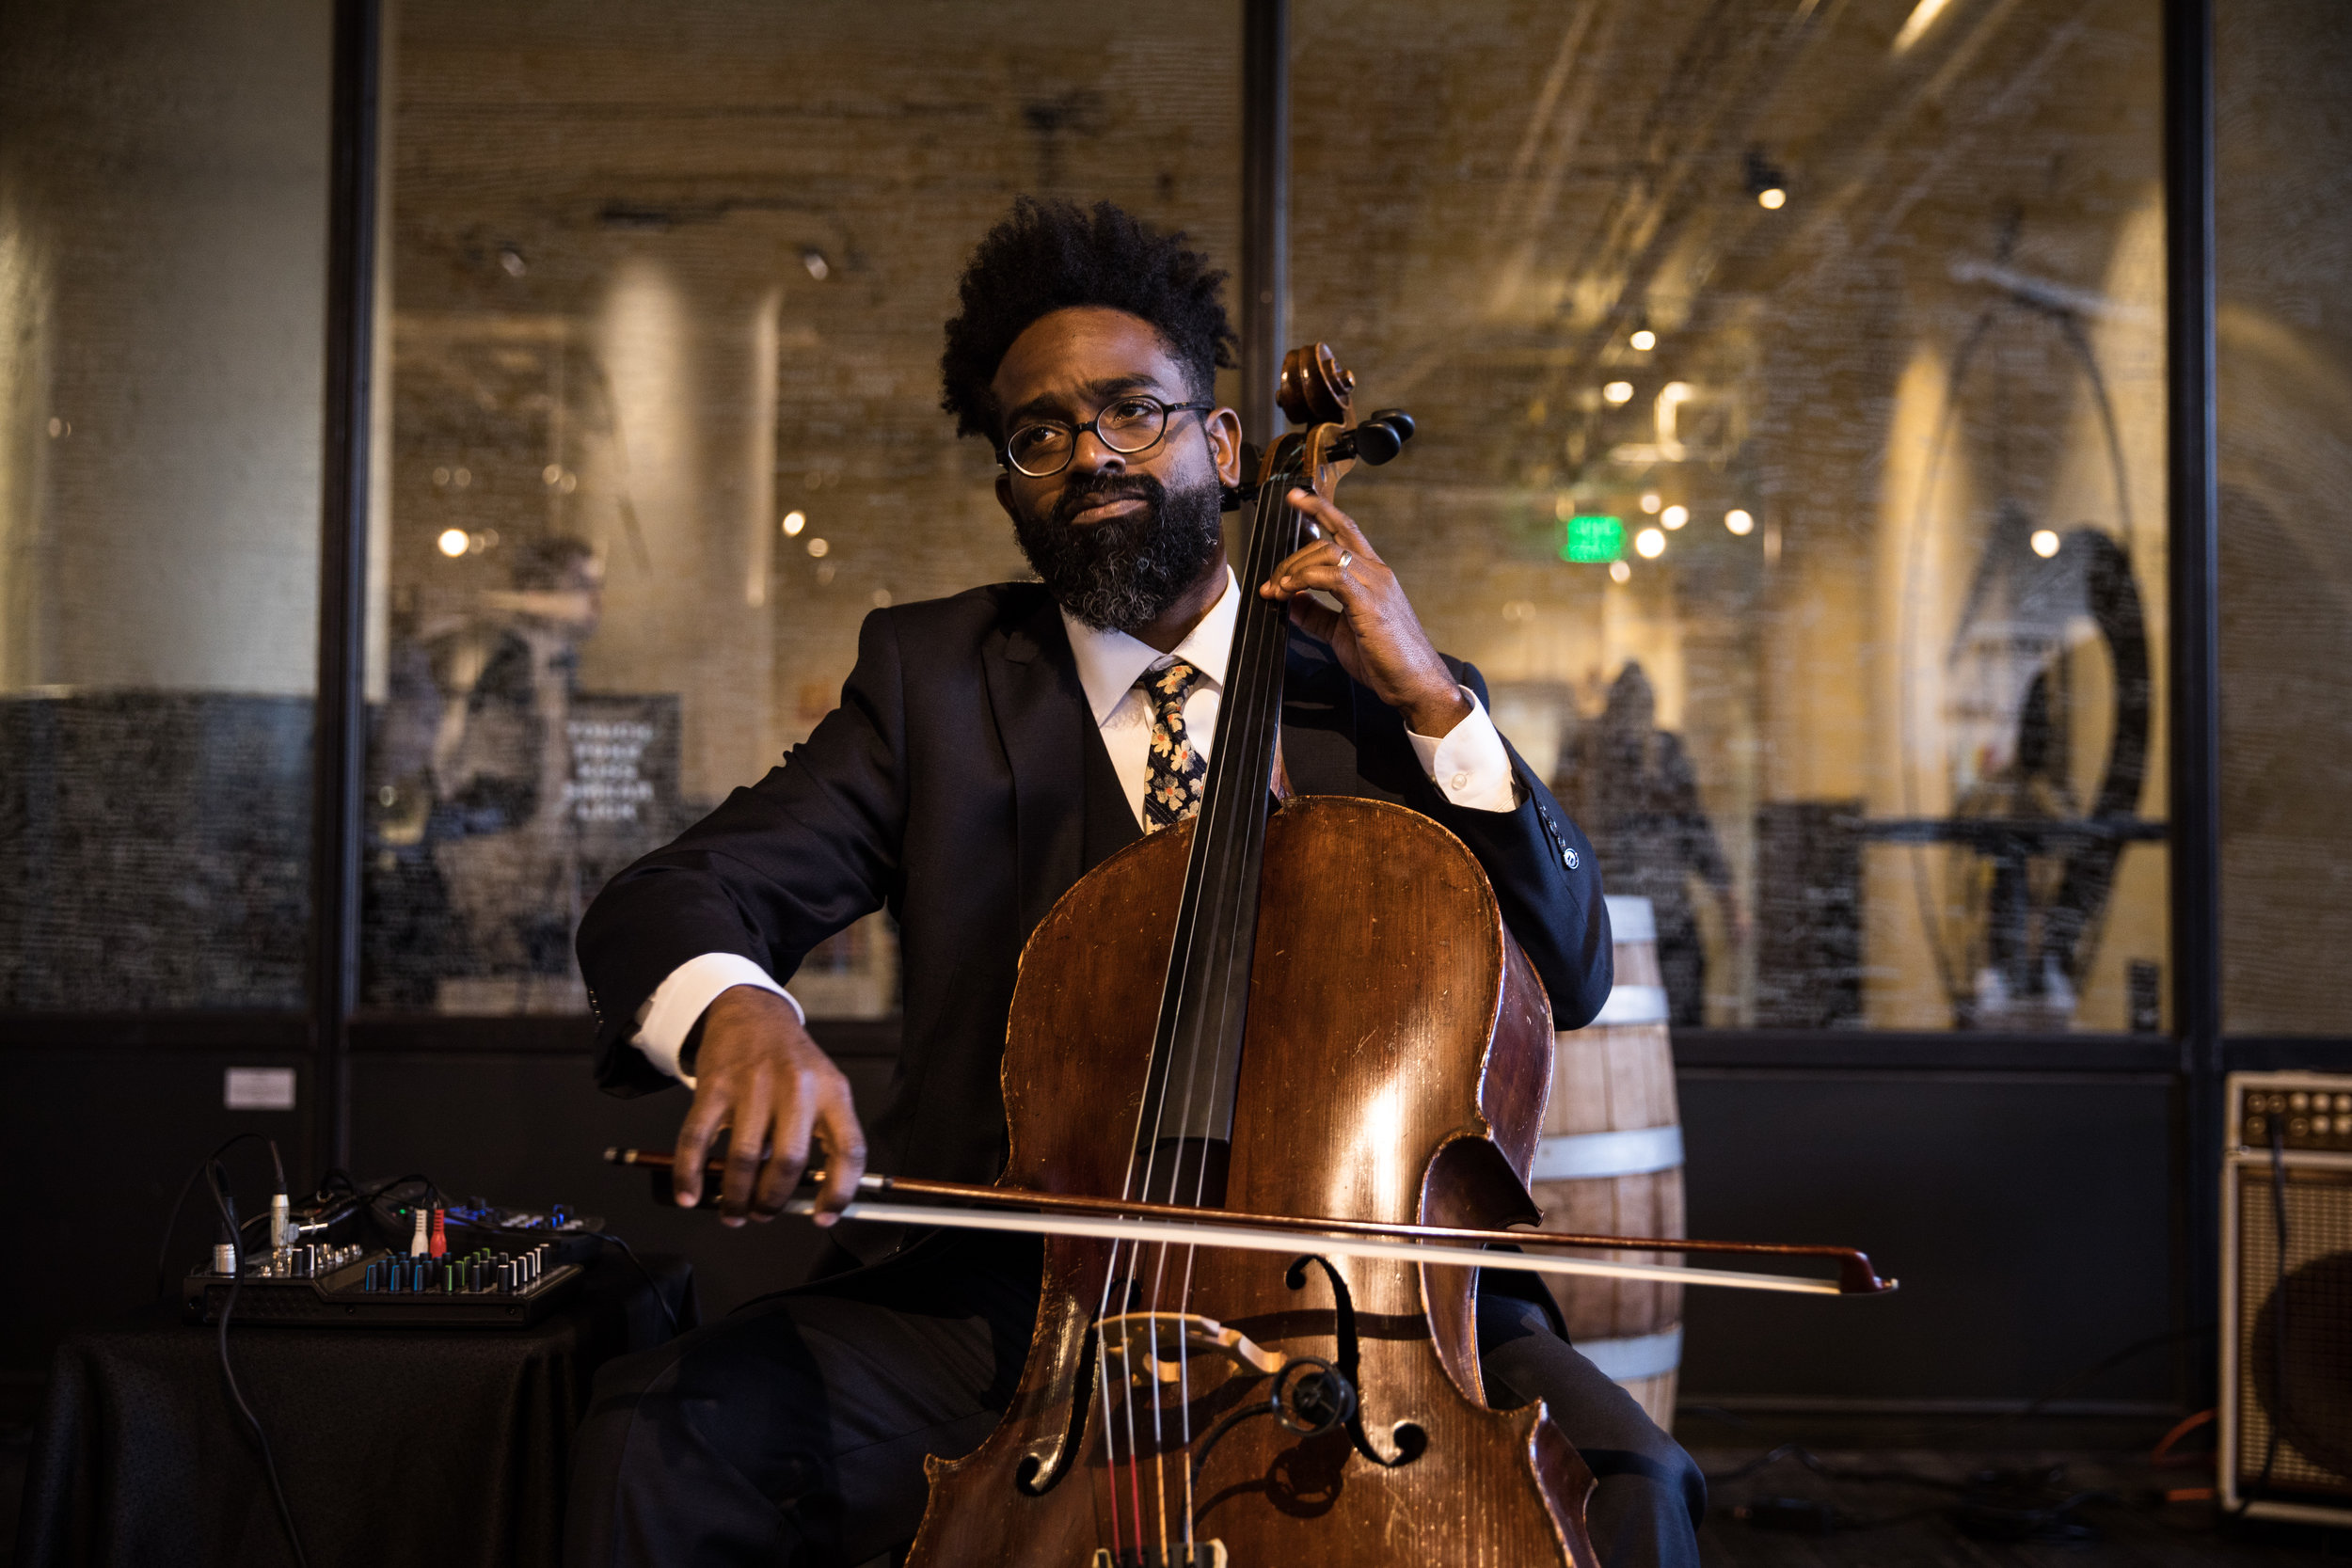 Cellist dressed in stylish suit